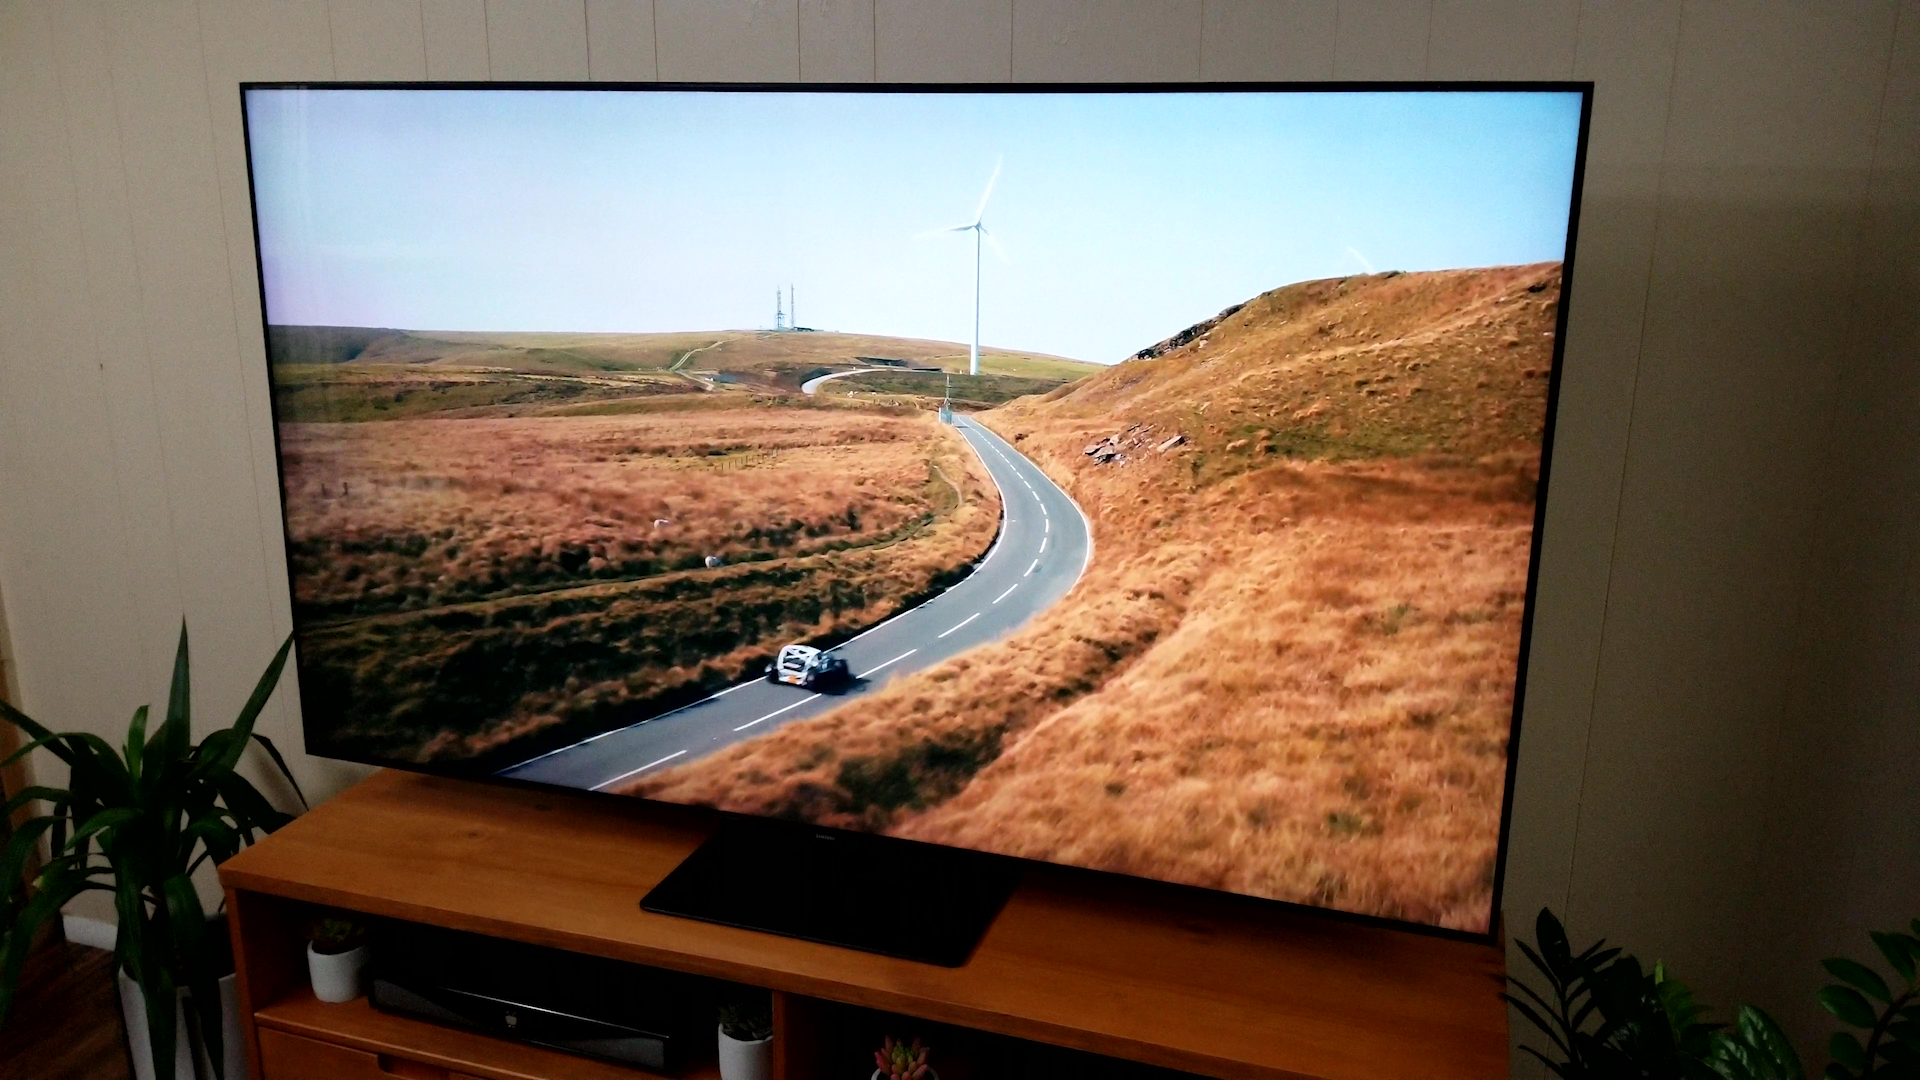 Video: Samsung Q80T QLED TV review: Aiming for the price-picture sweet spot